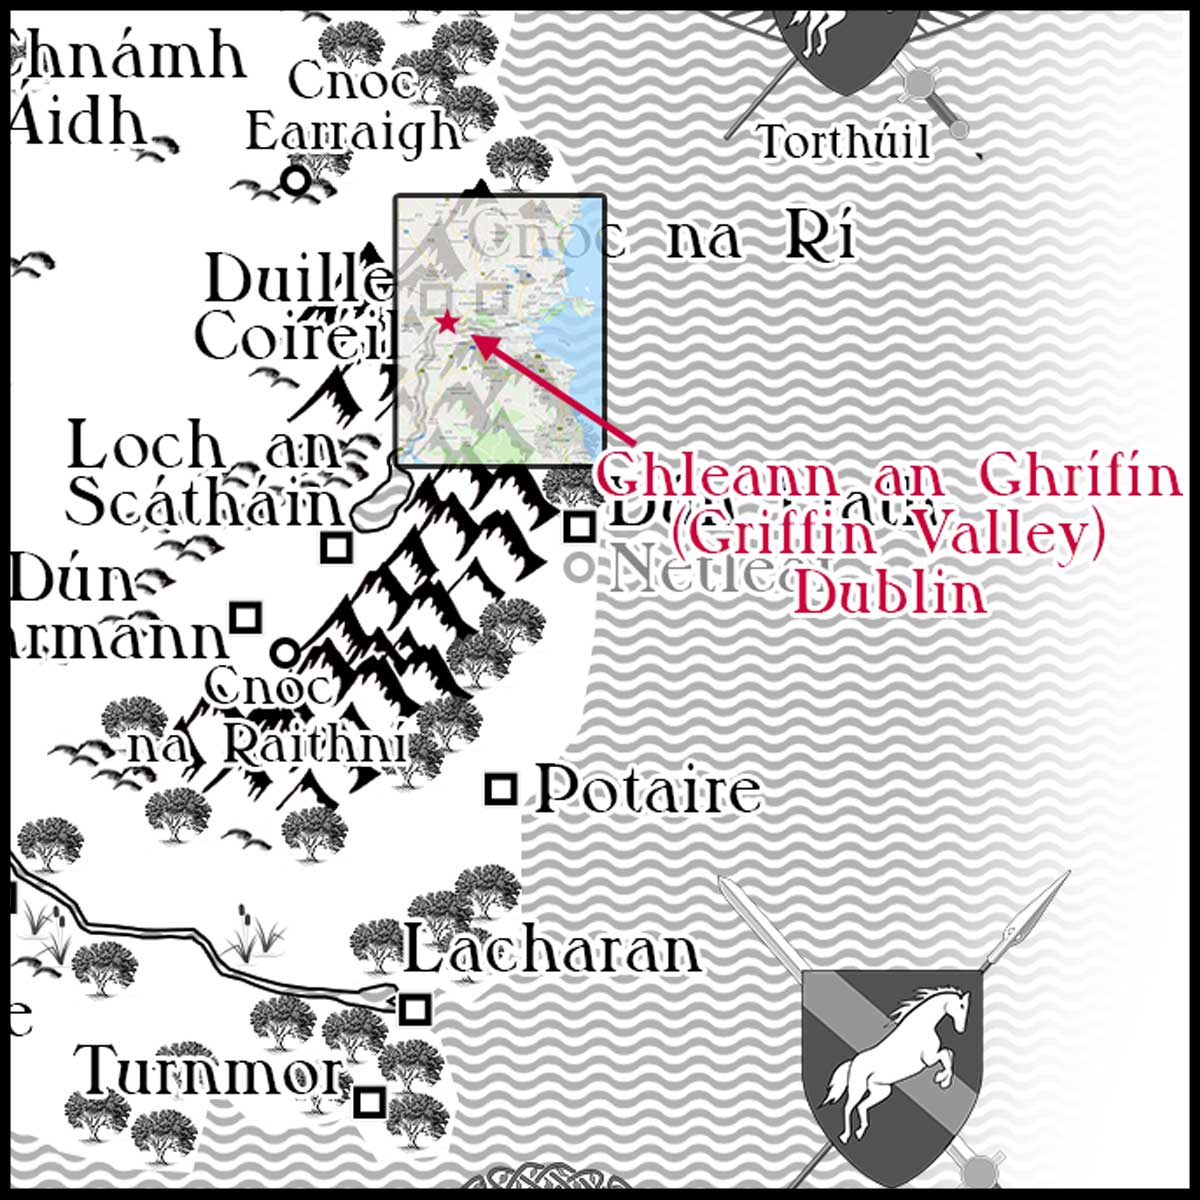 Rathúnas's River Valley and griffin roost serendipitously match the exact location of Ireland's Ghleann an Ghrífín or Griffeen Valley / Griffin Valley